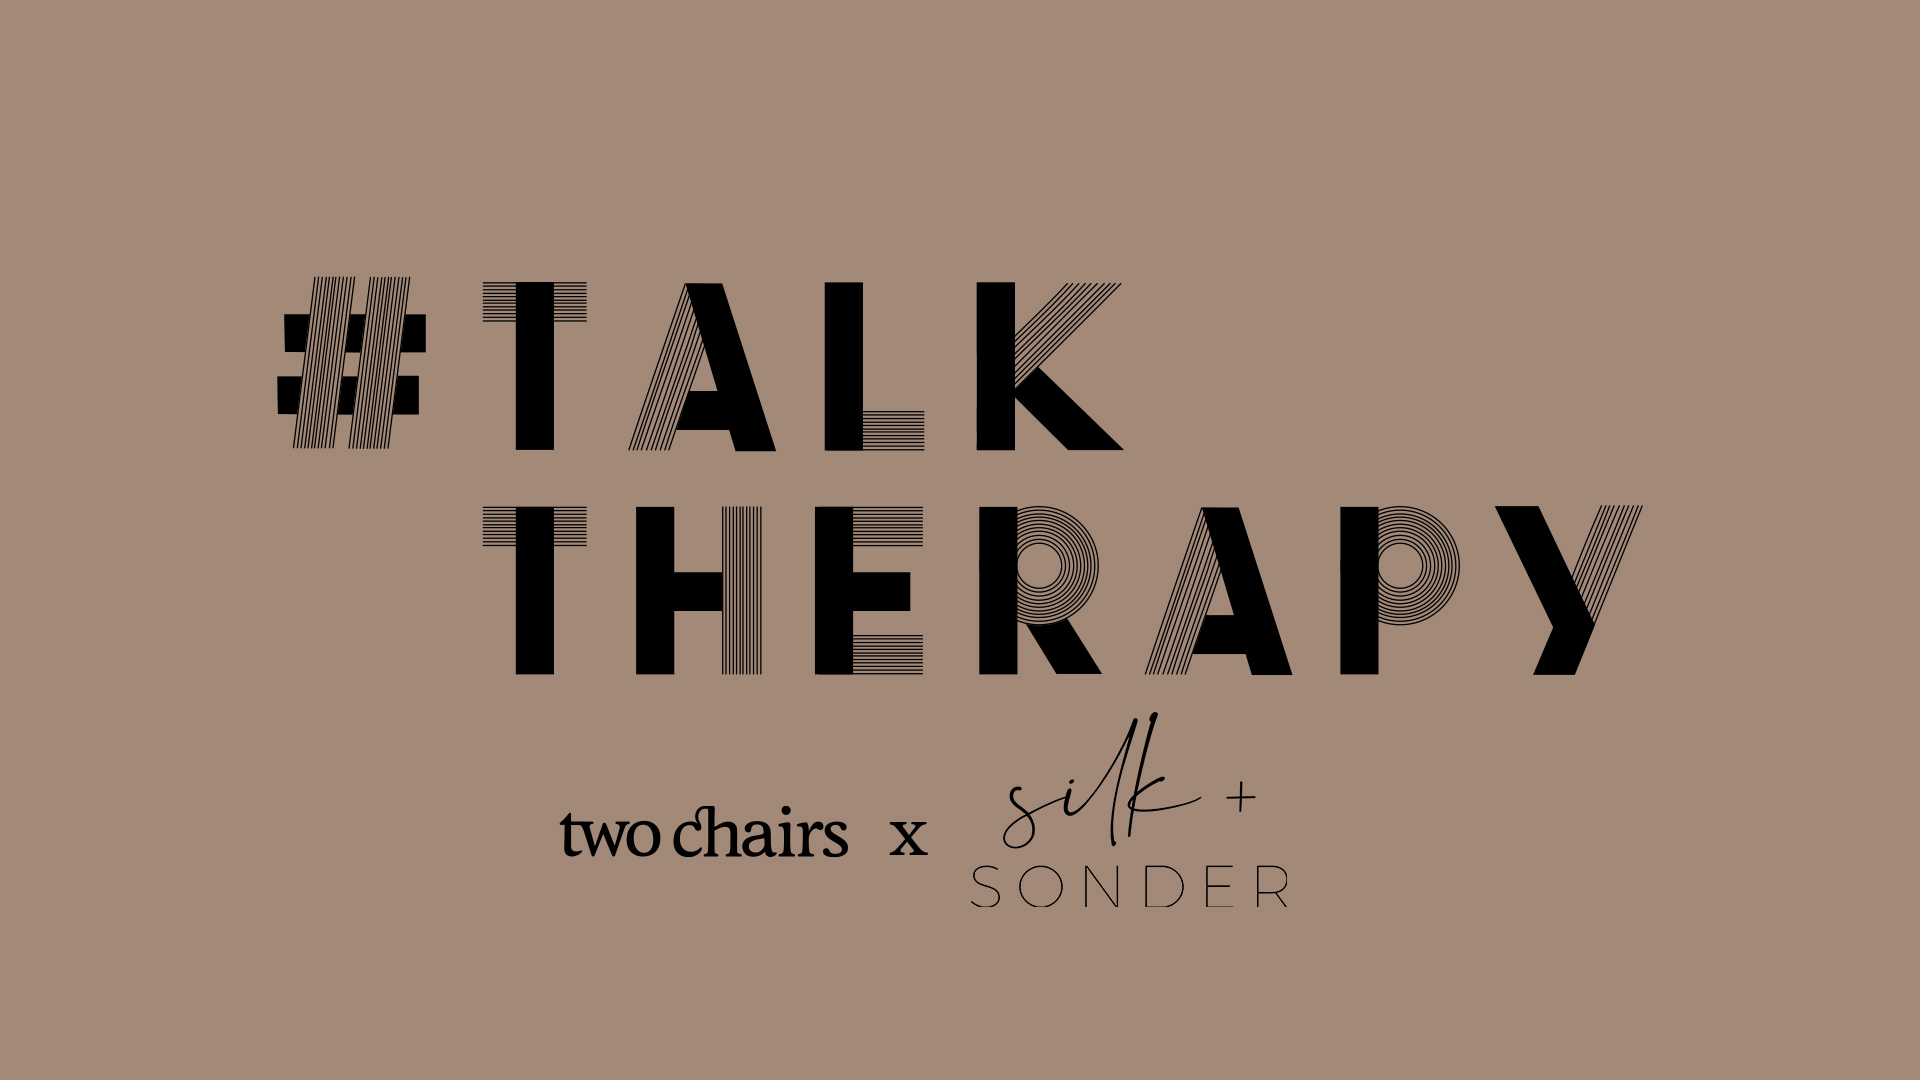 #TalkTherapy with Meha Agrawal, Founder of Silk + Sonder